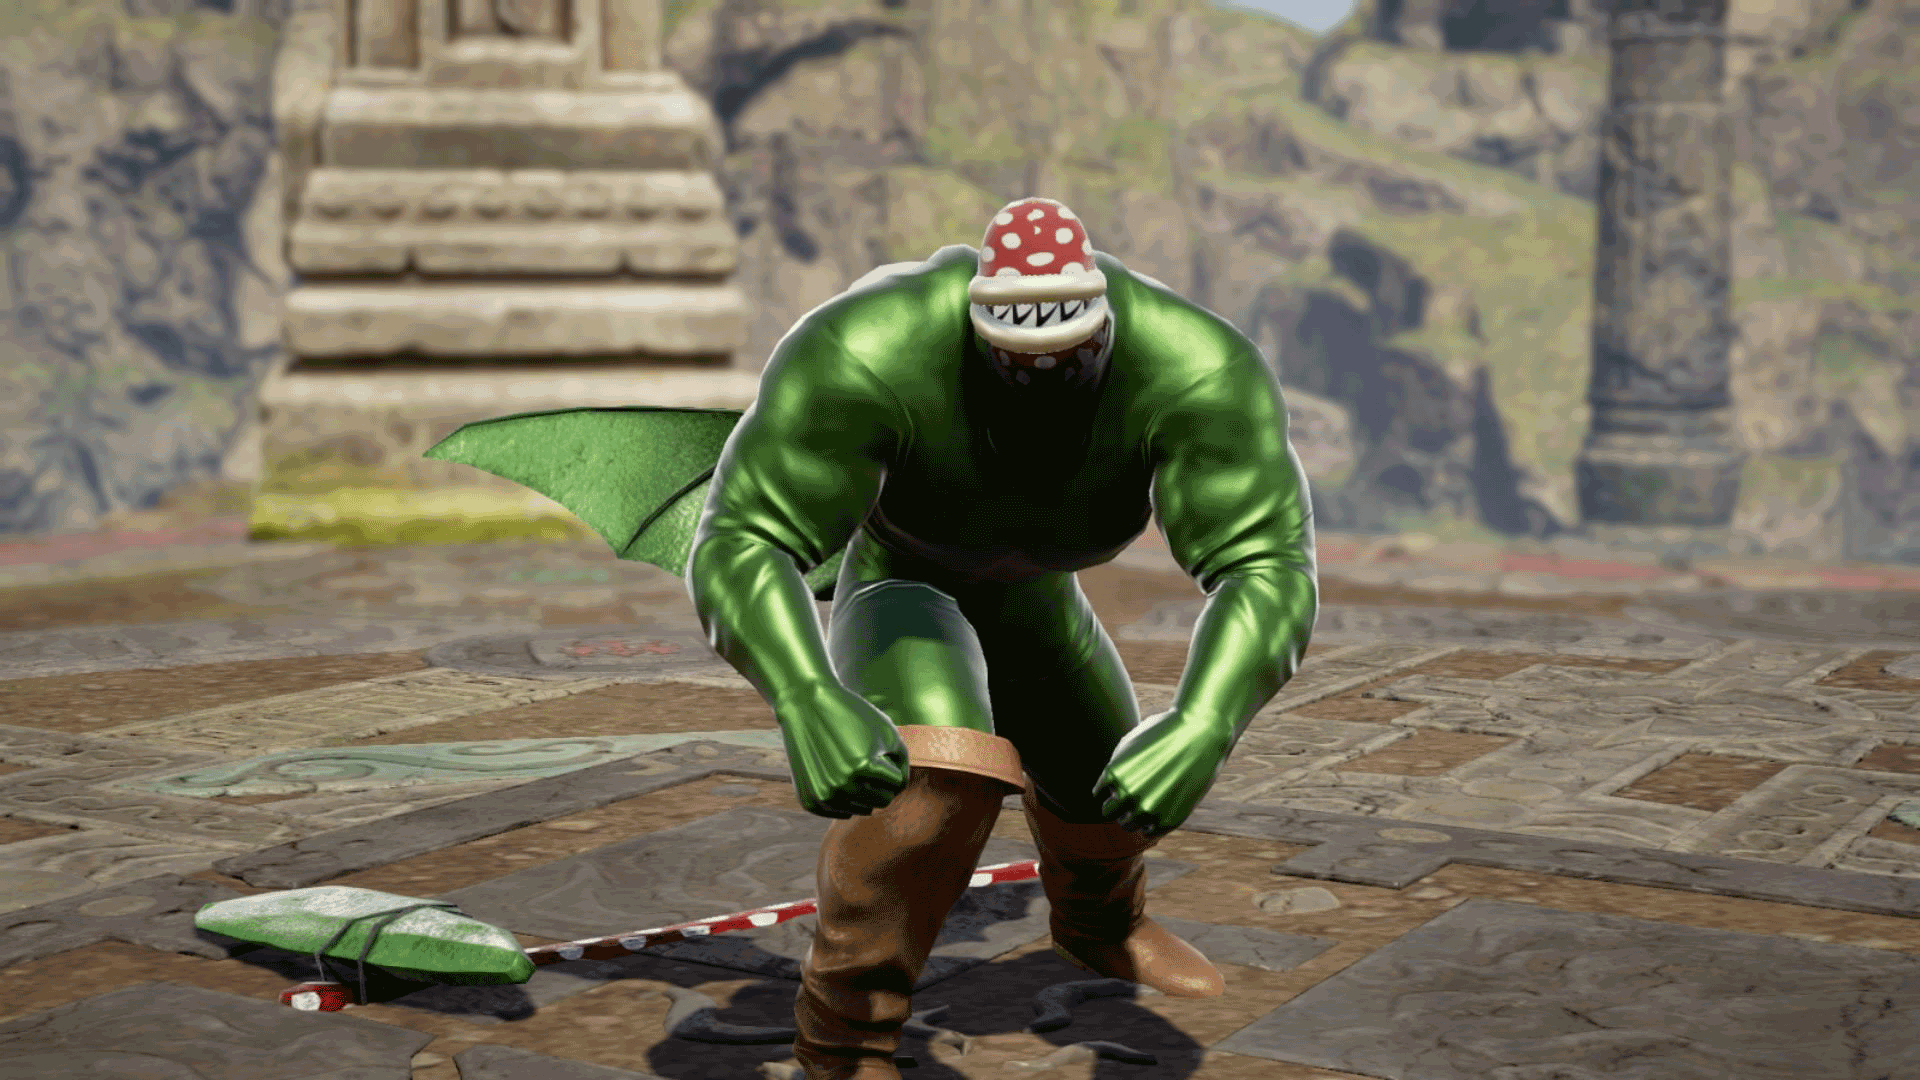 Piranha Plant in Soul Calibur 6 2 out of 5 image gallery